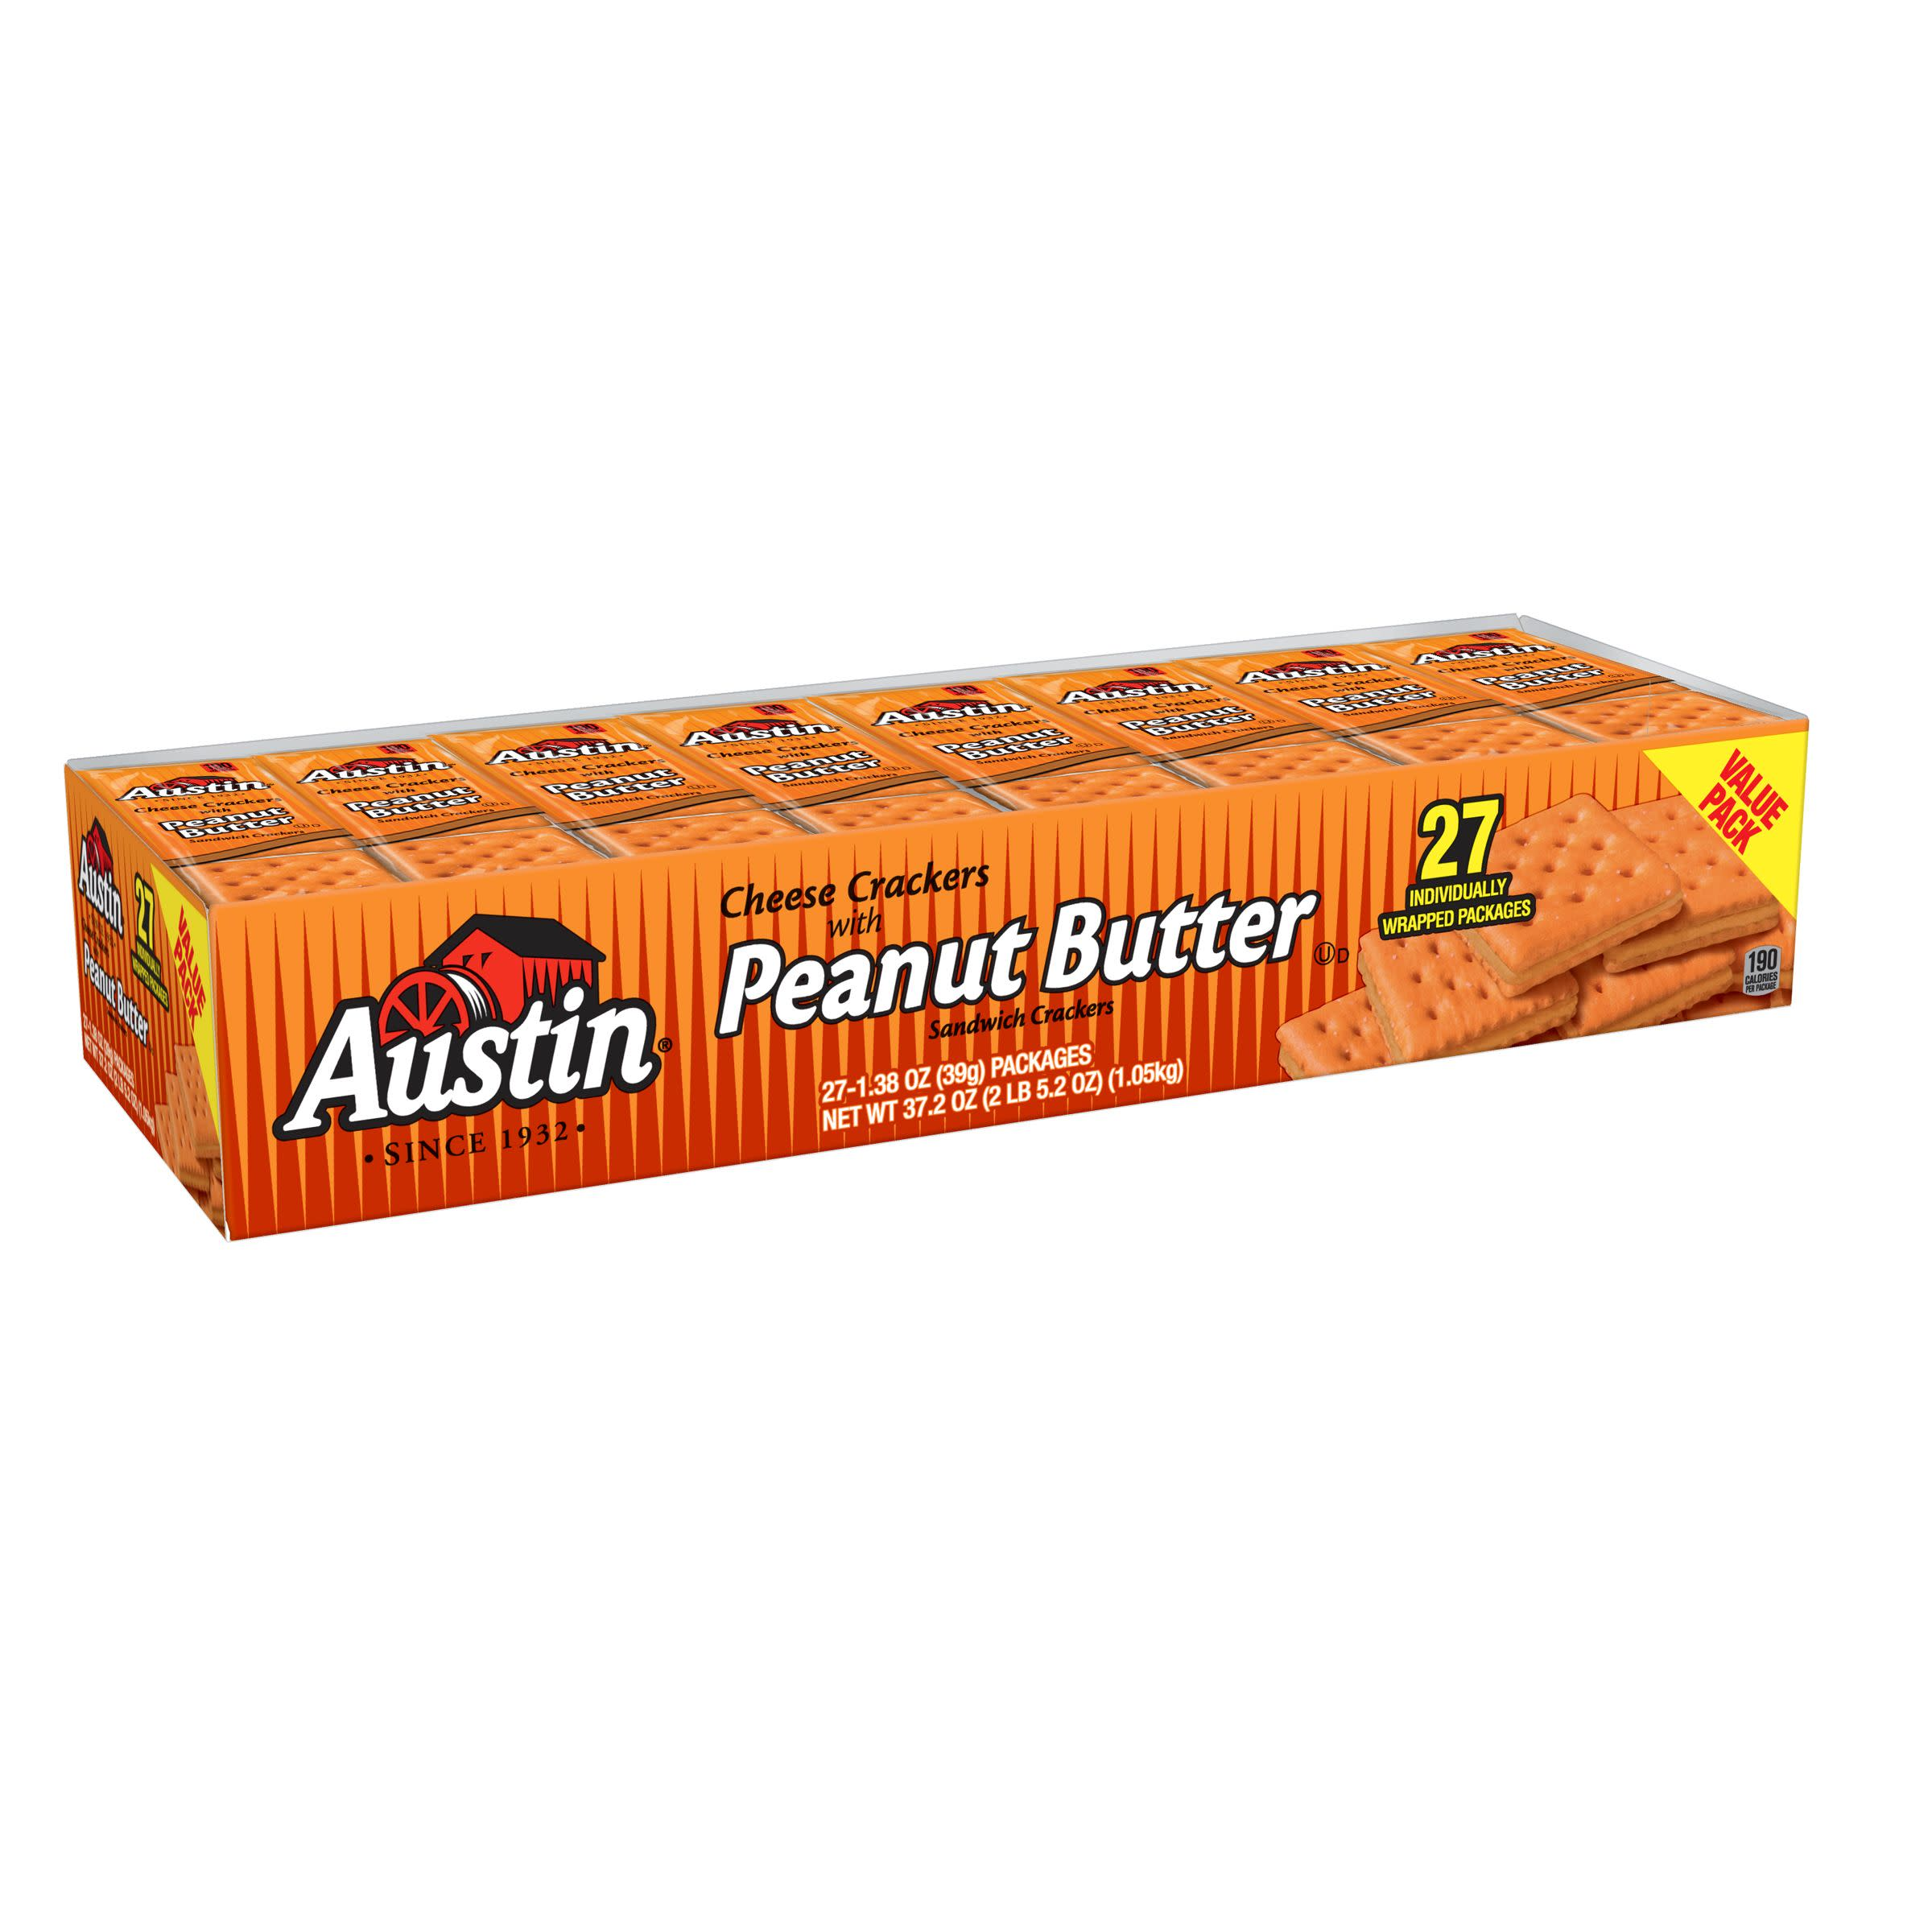 Austin Sandwich Crackers Cheese Crackers with Peanut Butter Value Pack 37.2 oz 27 Ct